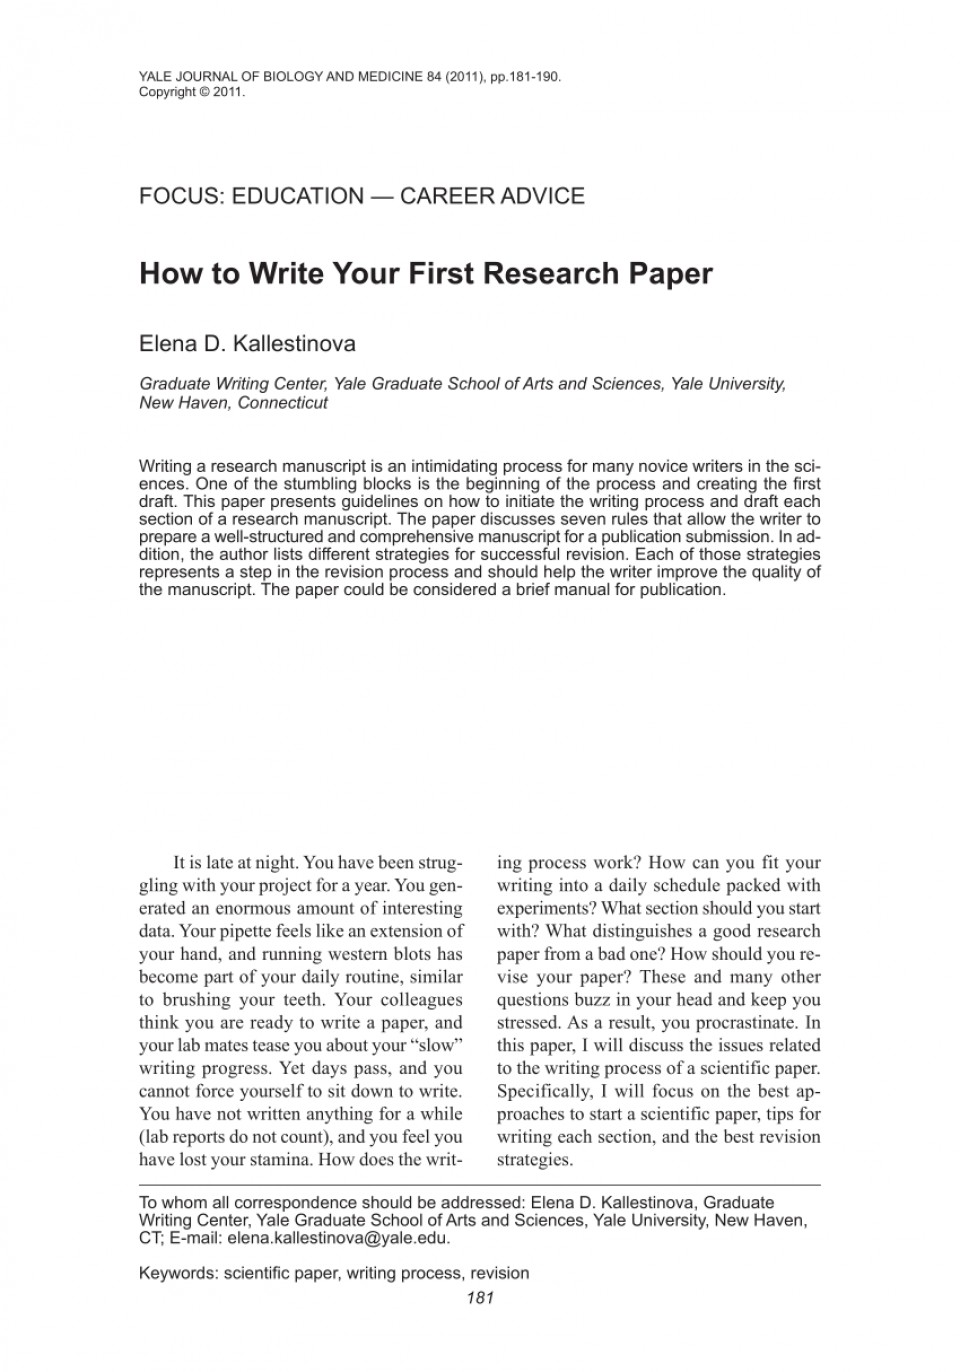 009 Largepreview Research Paper How To Breathtaking Write A Hook Reference Conclusion For Pdf 960